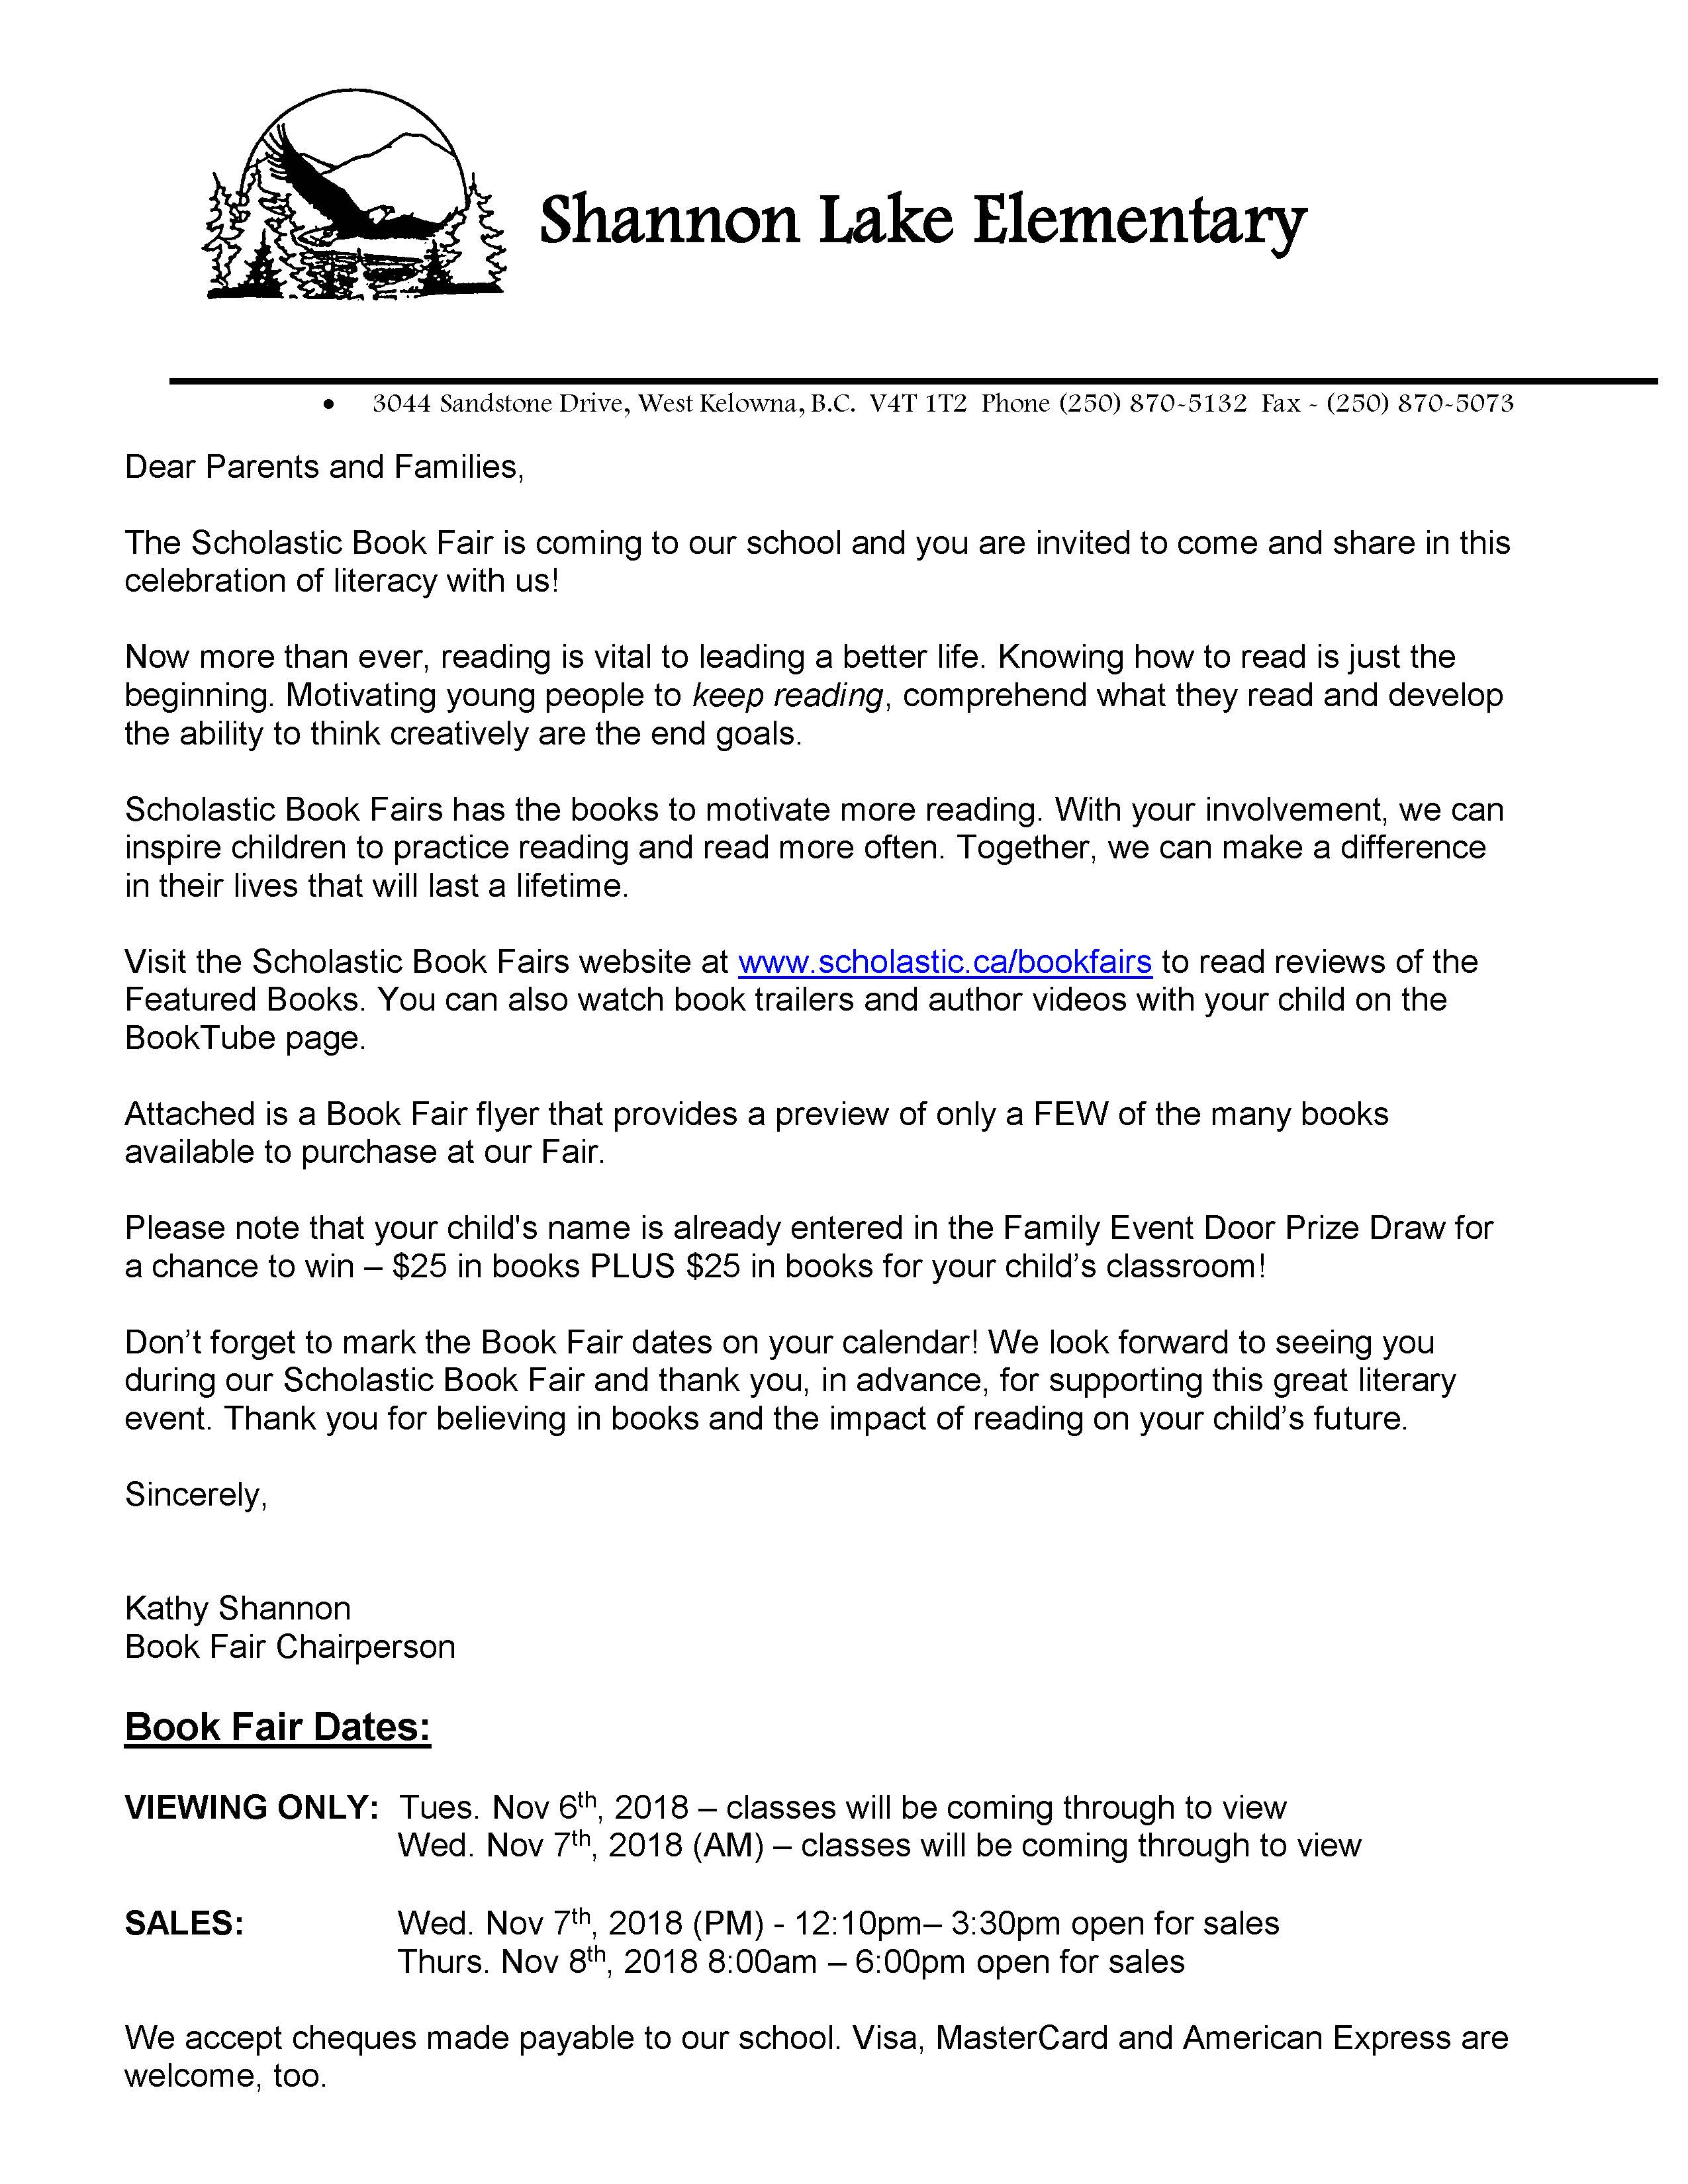 Book Fair Parent Letter Nov 2018.jpg